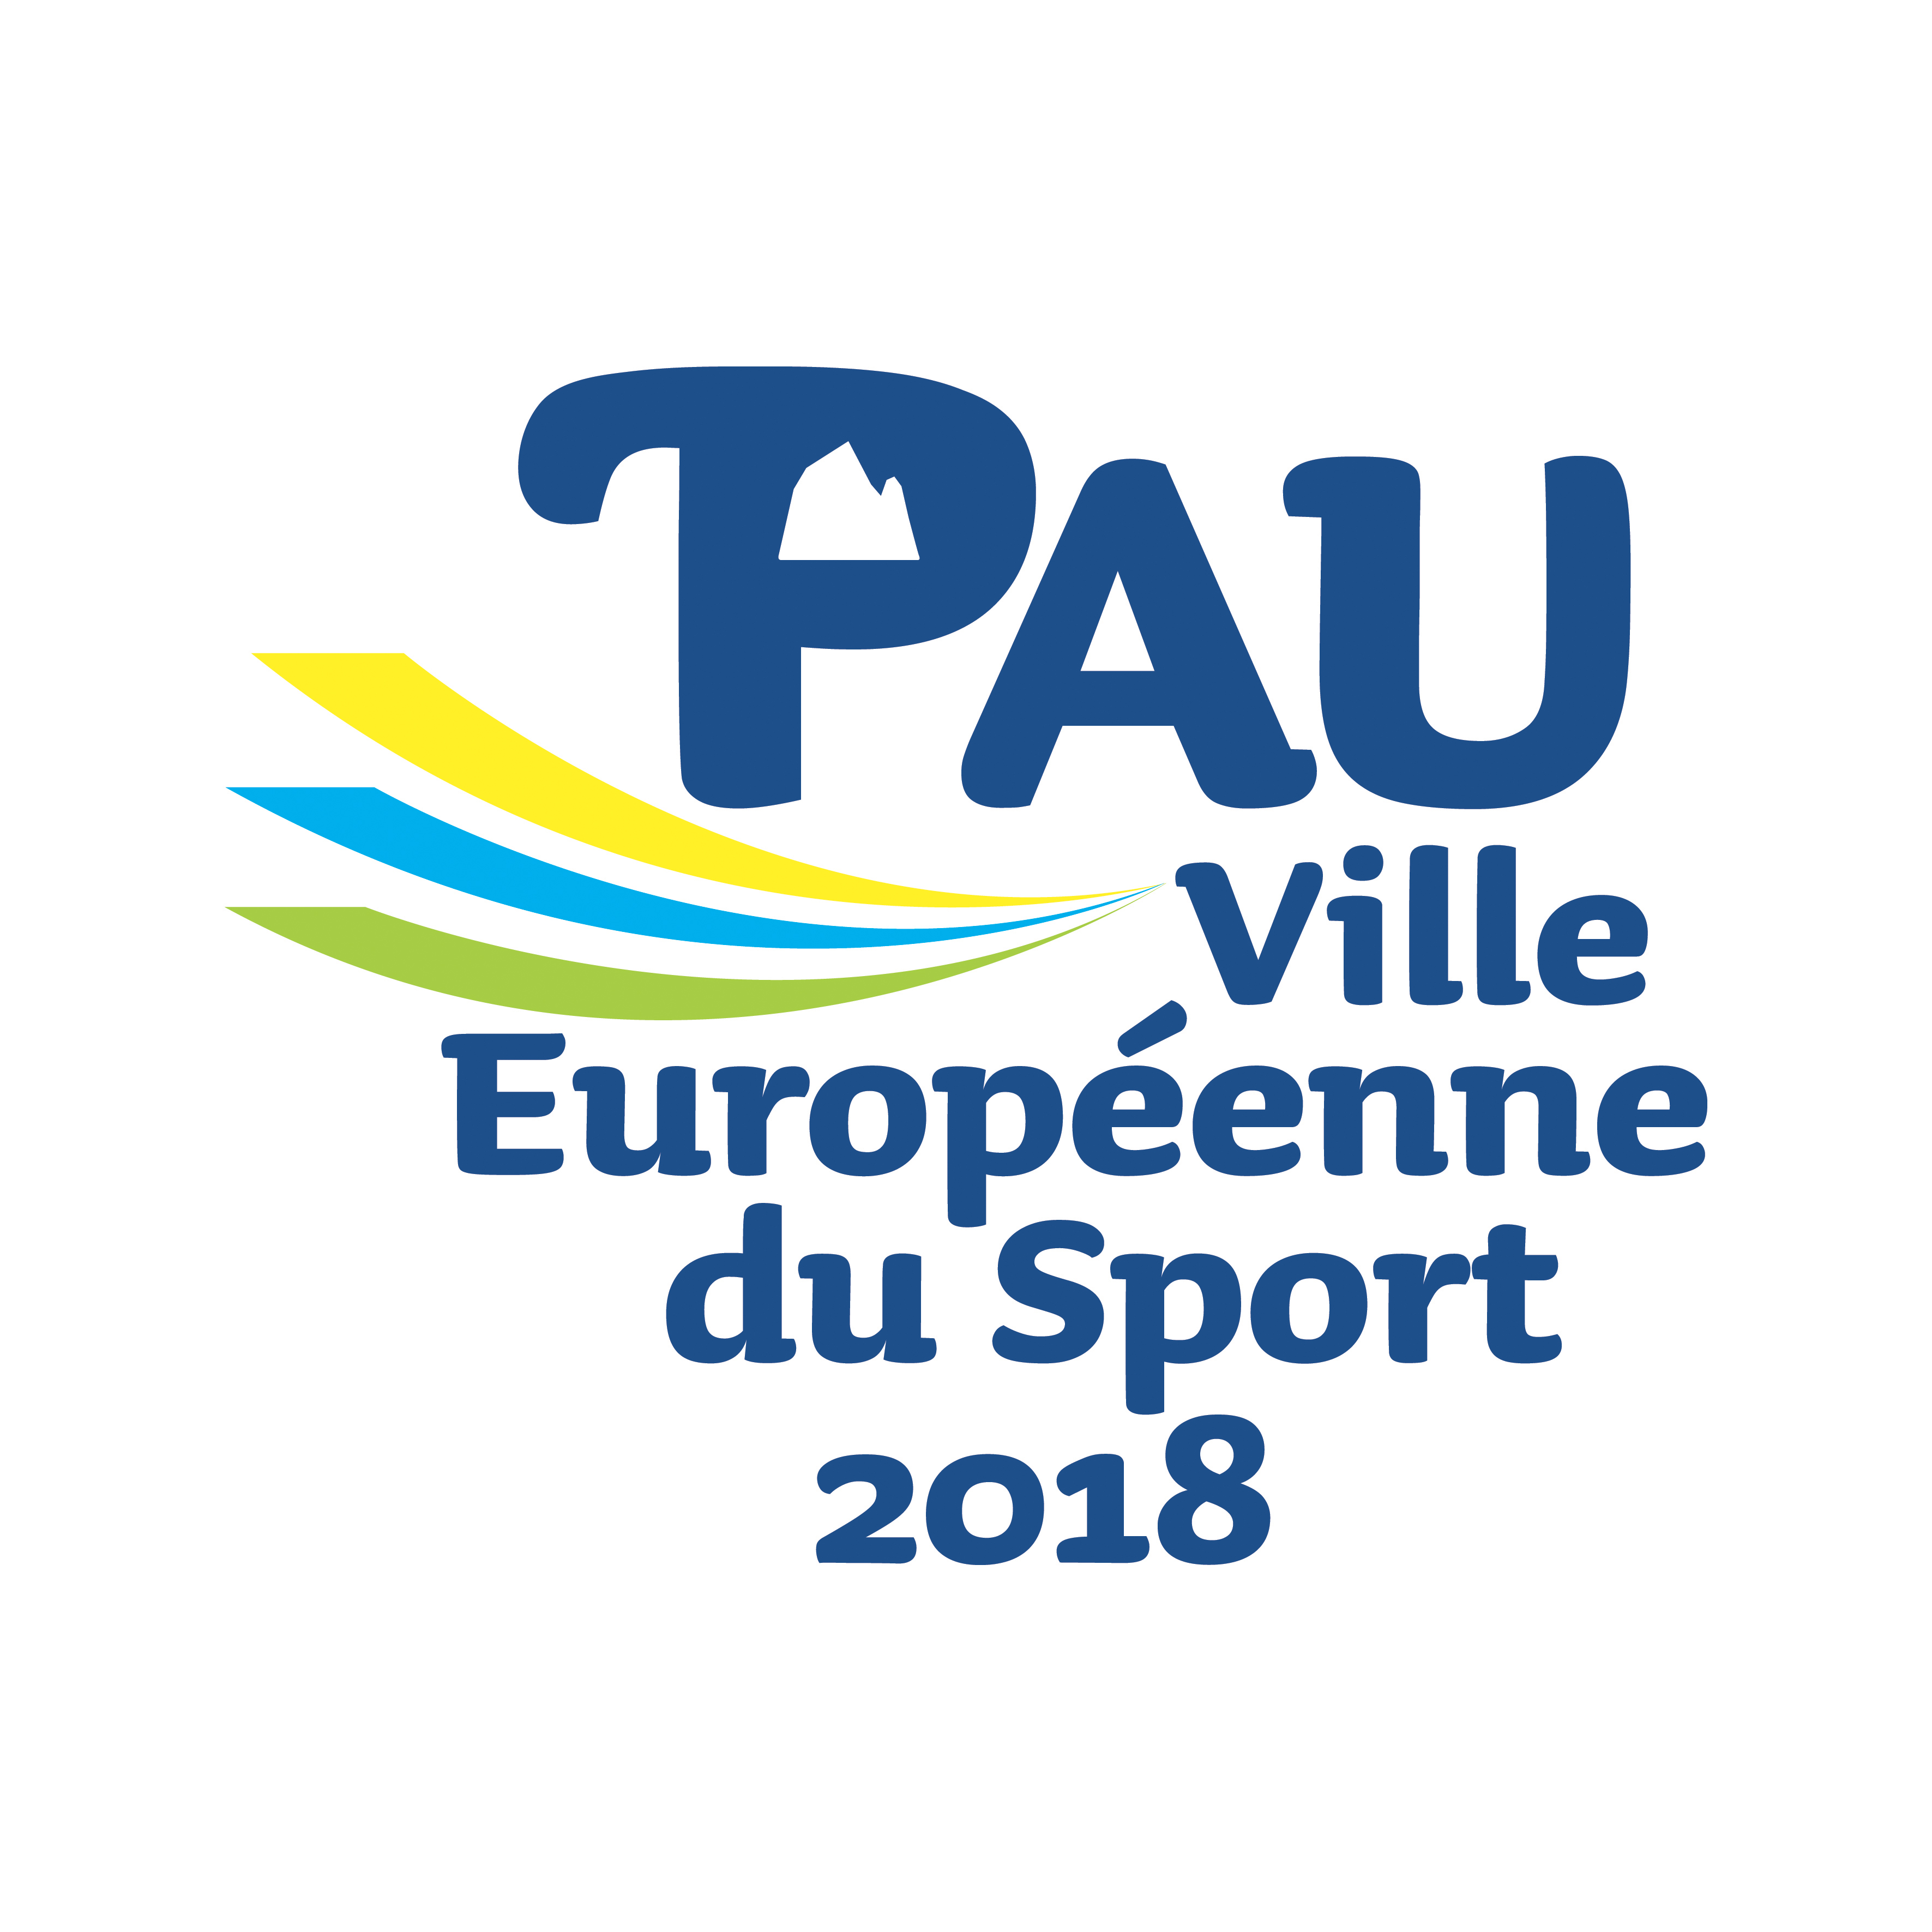 PAU VILLE EUROPEENNE DU SPORT 2018 RVB